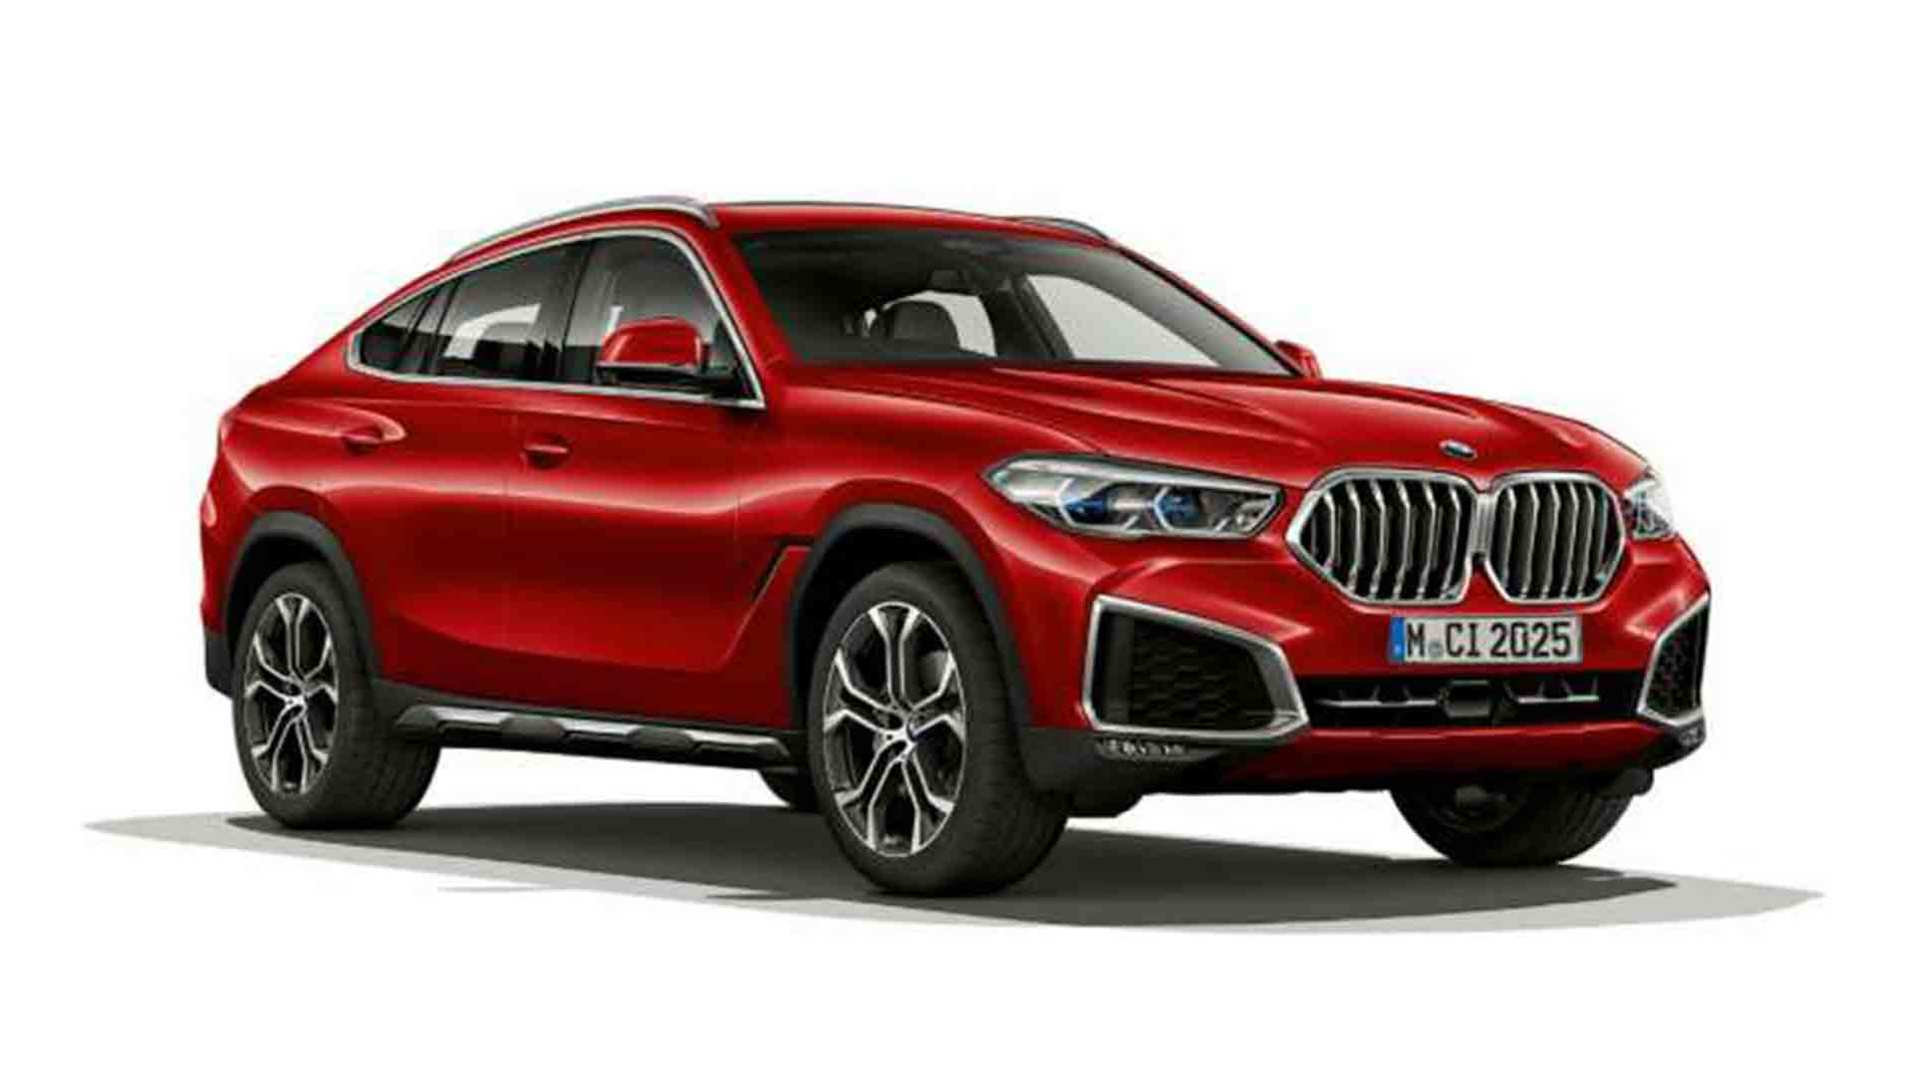 BMW X6 BS6 Price, Images, Colours & Reviews - CarWale